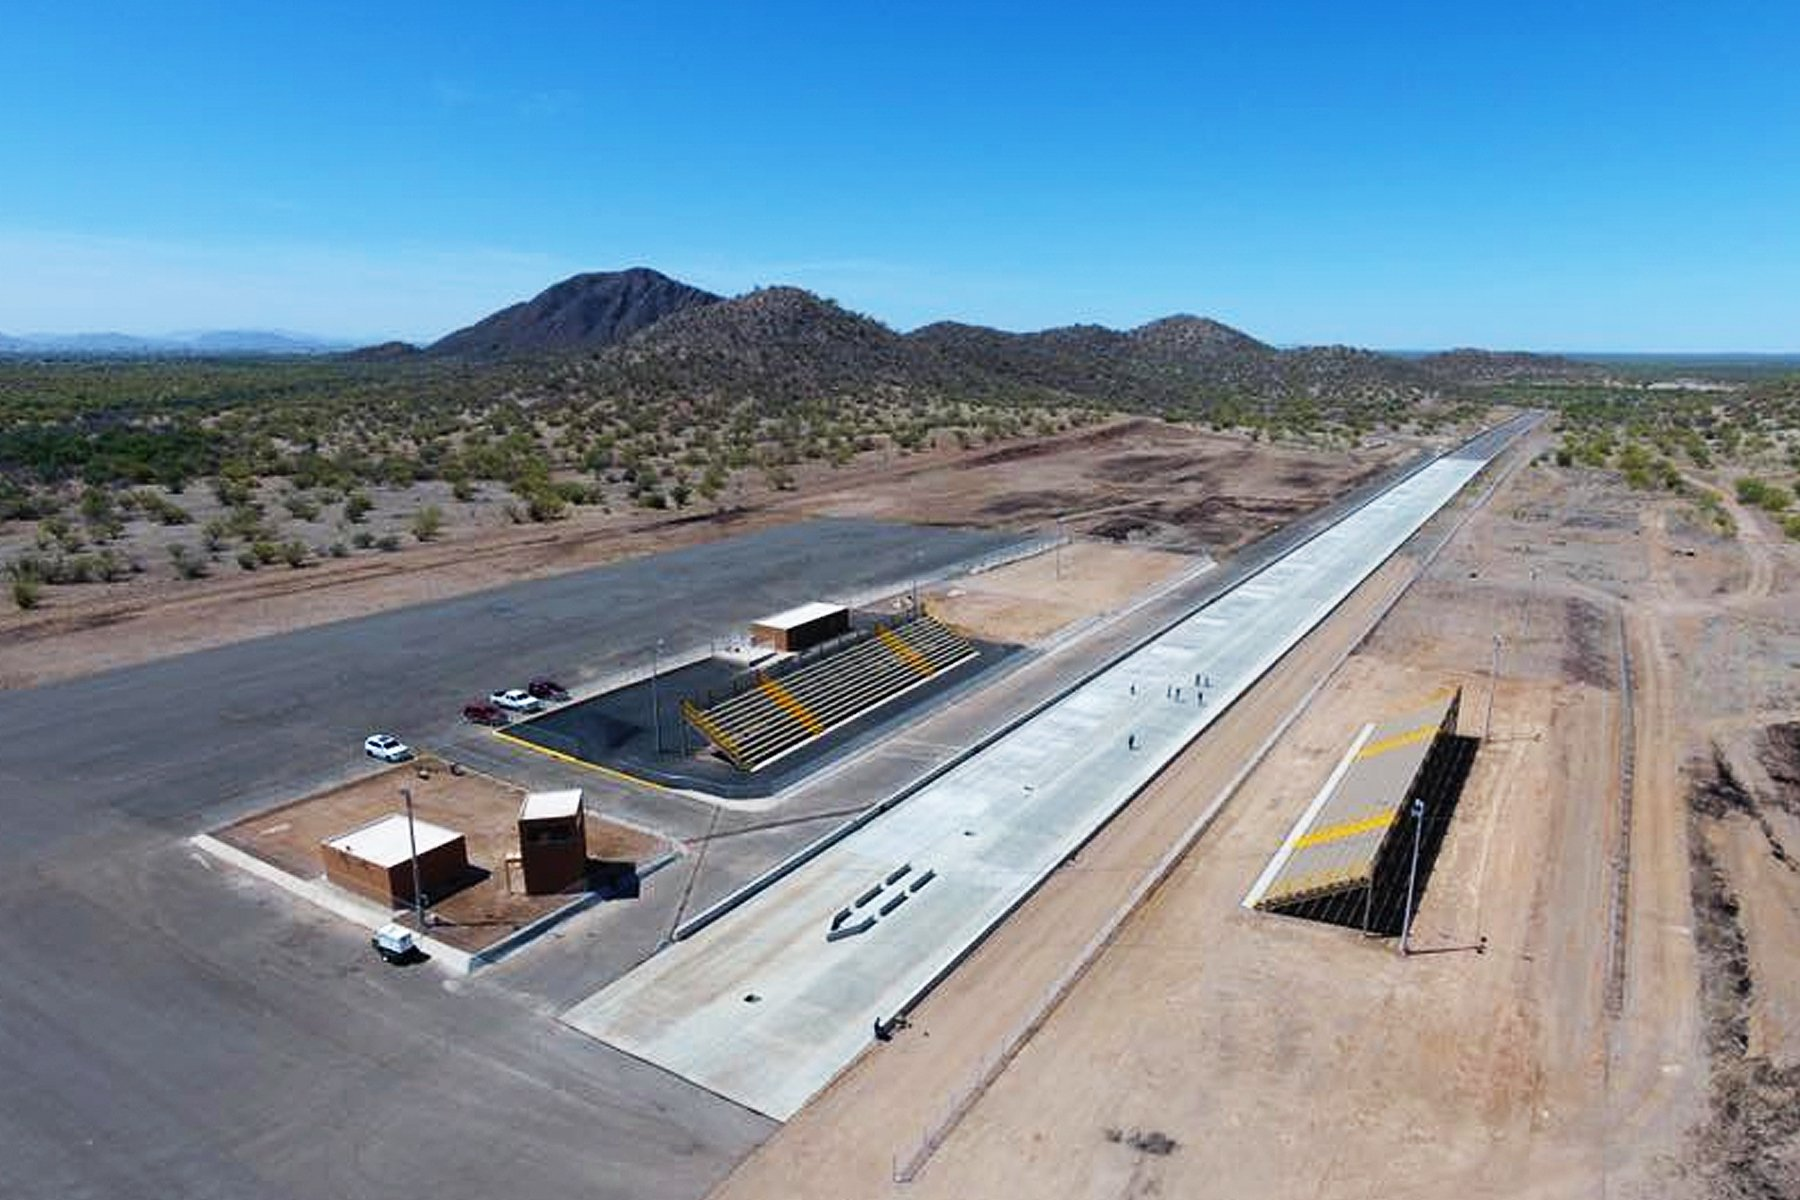 New Dragstrip Enters Final Stages Of Construction In Mexico